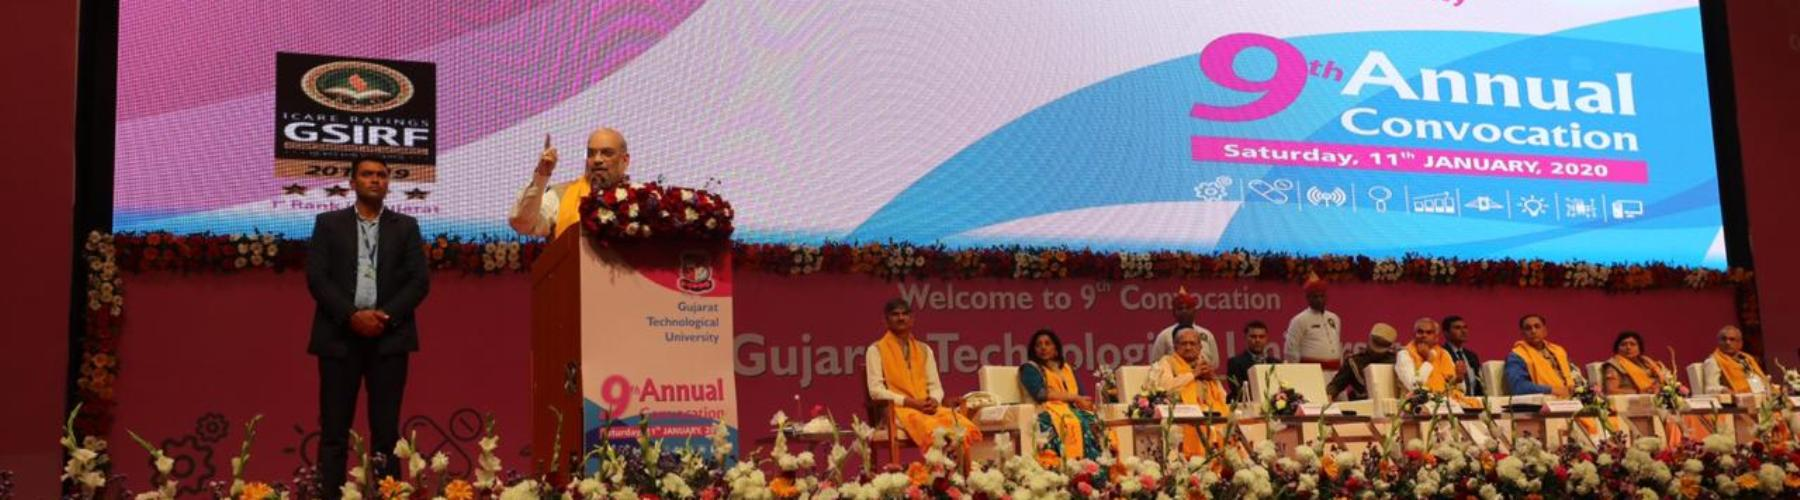 Union Home Minister, Shri Amit Shah addressing at the 9th Annual Convocation of Gujarat Technological University, in Gandhinagar, on January 11, 2020.